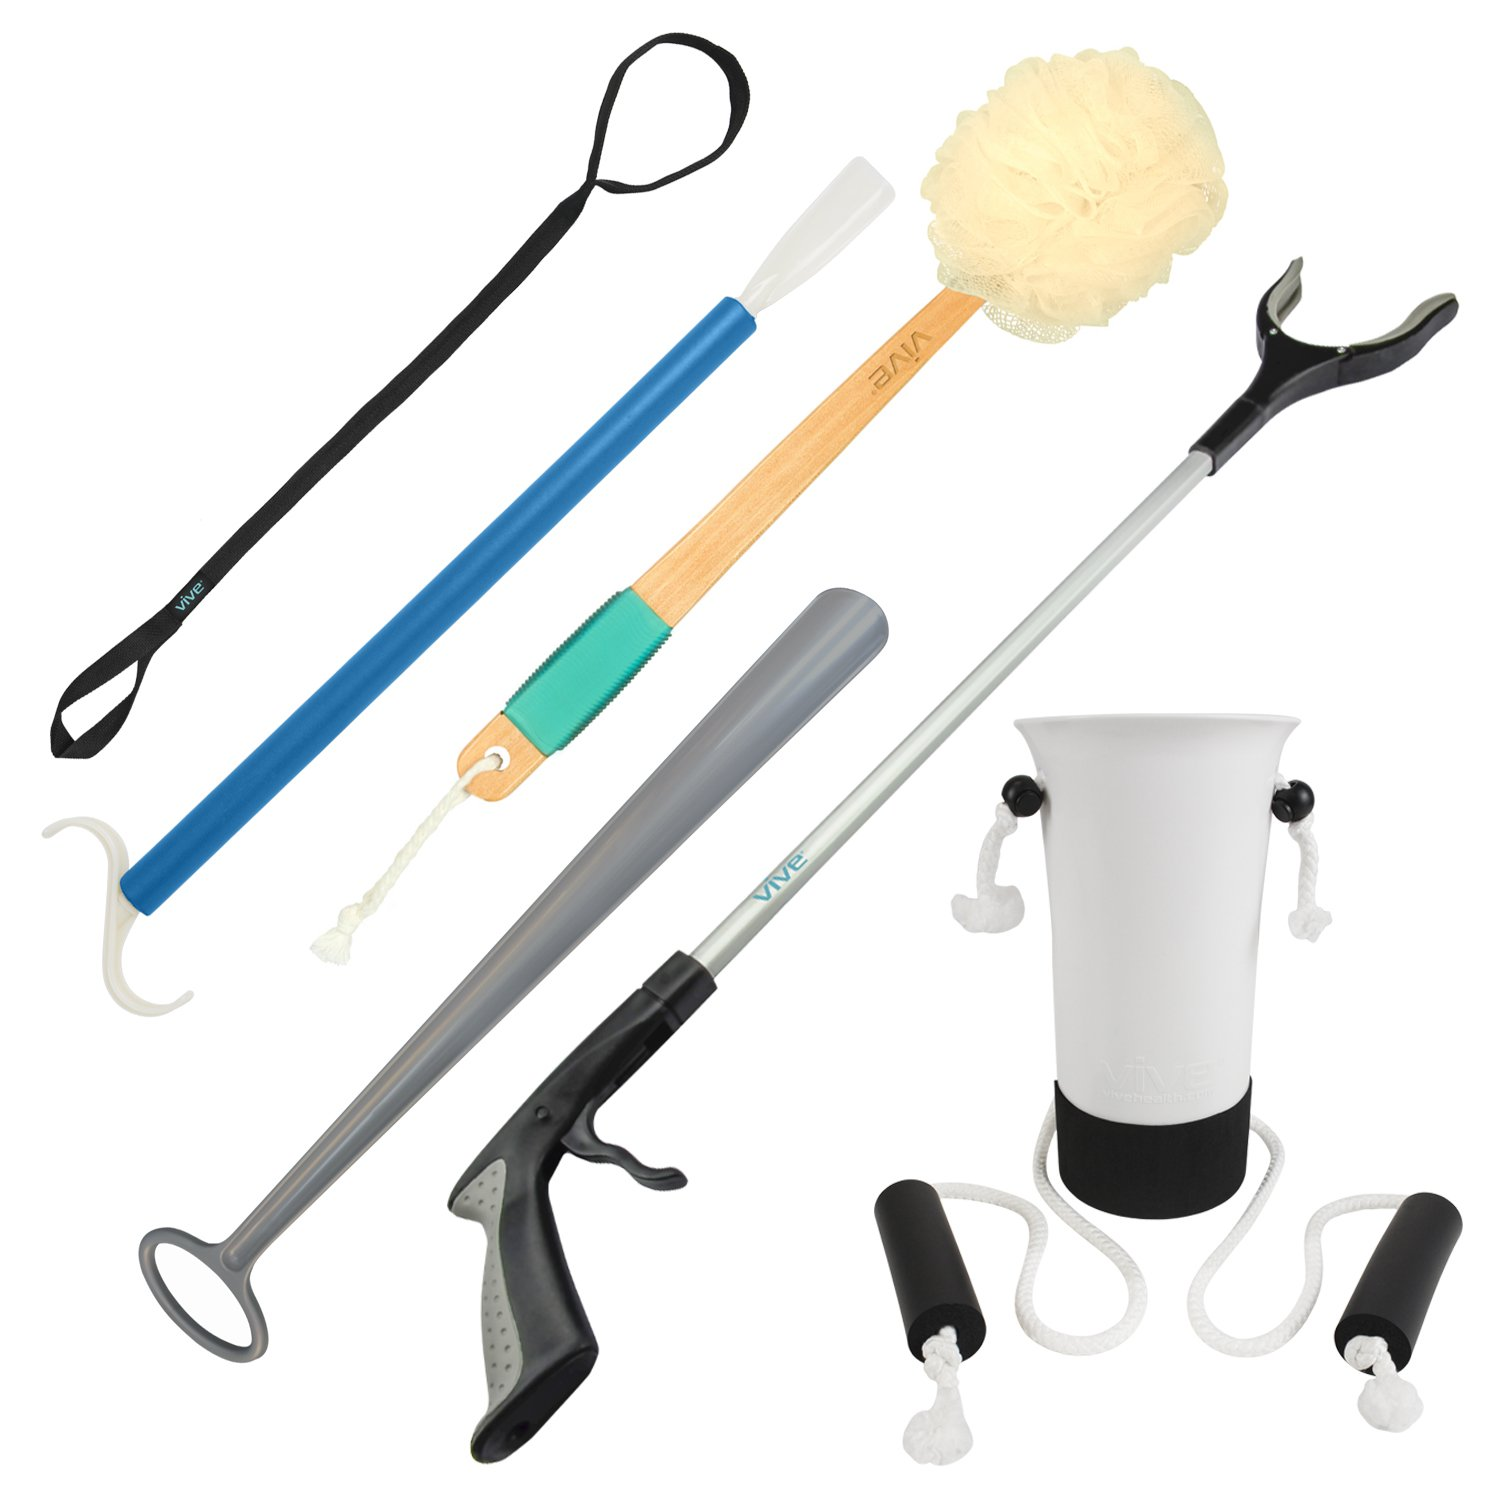 Vive 6 Piece Hip and Knee Replacement Kit - Surgery Recovery Set - Handicap Aid Package, Leg Loop Lifter, Reacher Grabber, Long Handle Shoe Horn, Shower Loofah Scrubber, Sock Assist, Dressing Stick by Vive